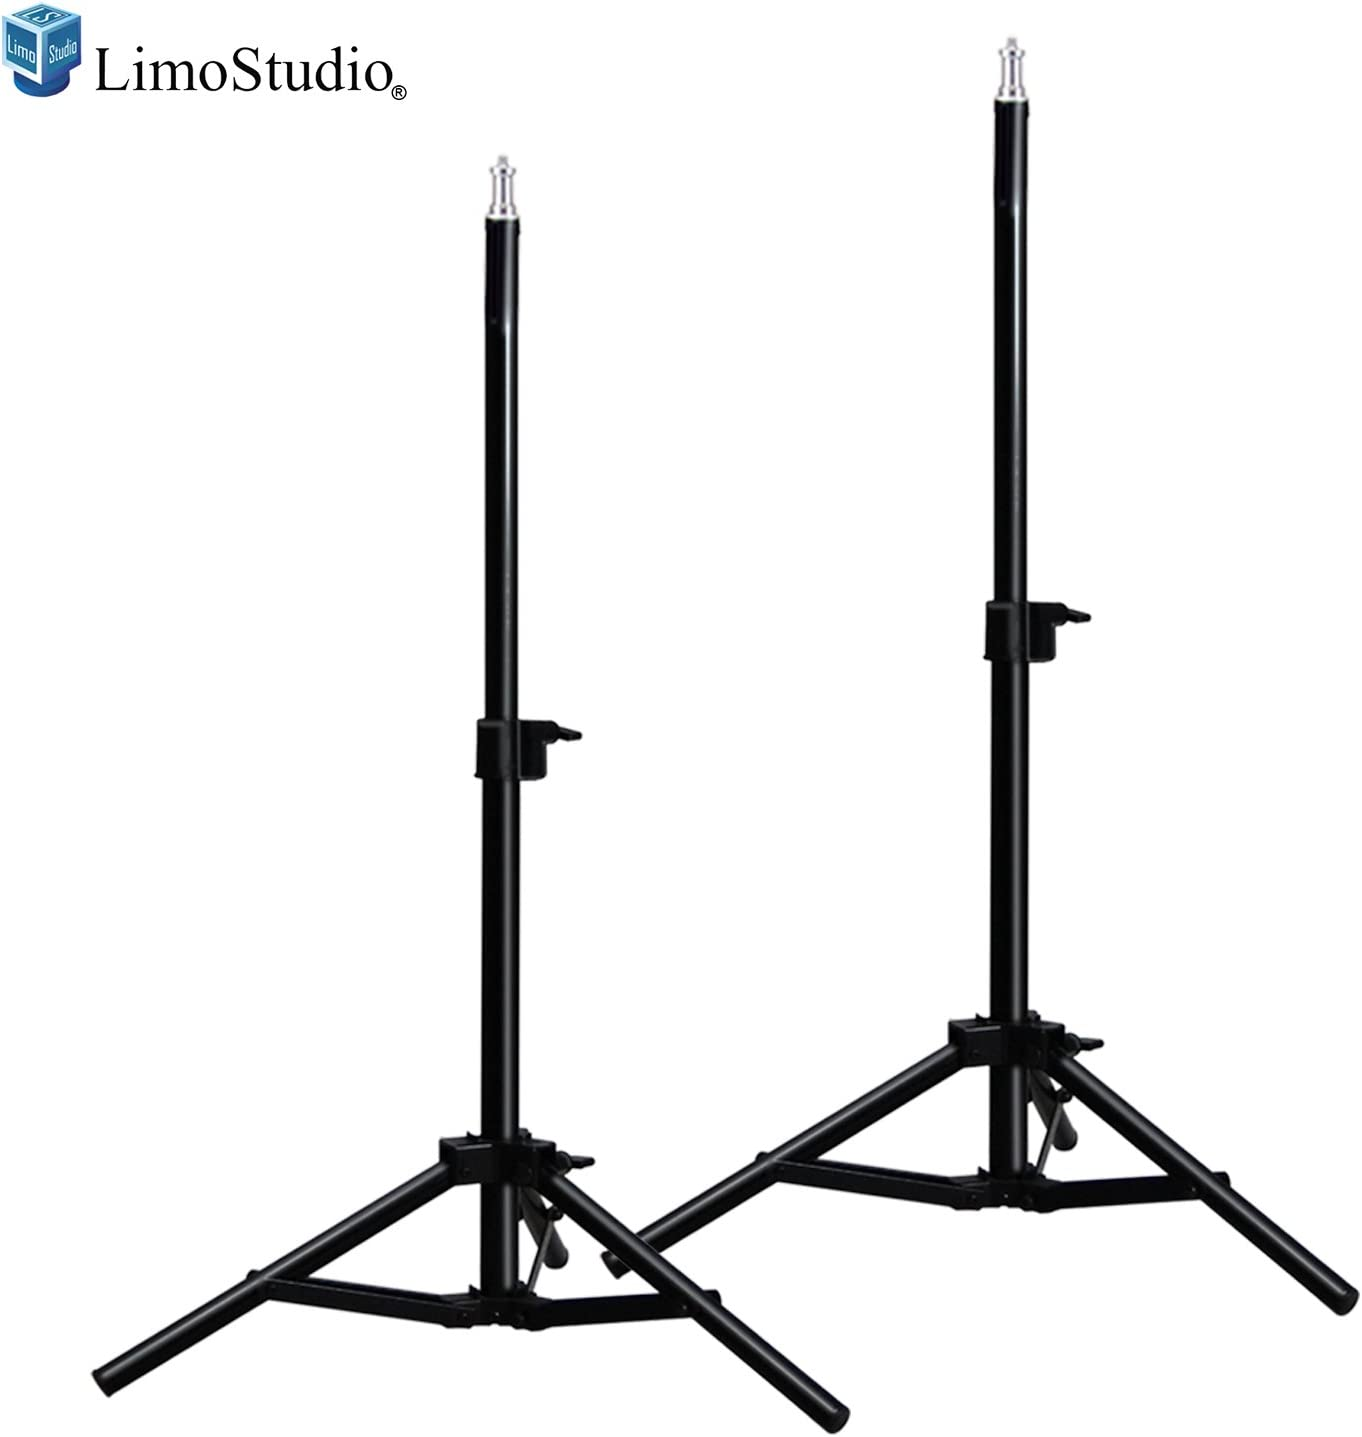 2-Pack Limostudio Thick and Sturdy for Photo Video Studio AGG2658 28-inch Height Adjustable Photography Light Stand Tripod